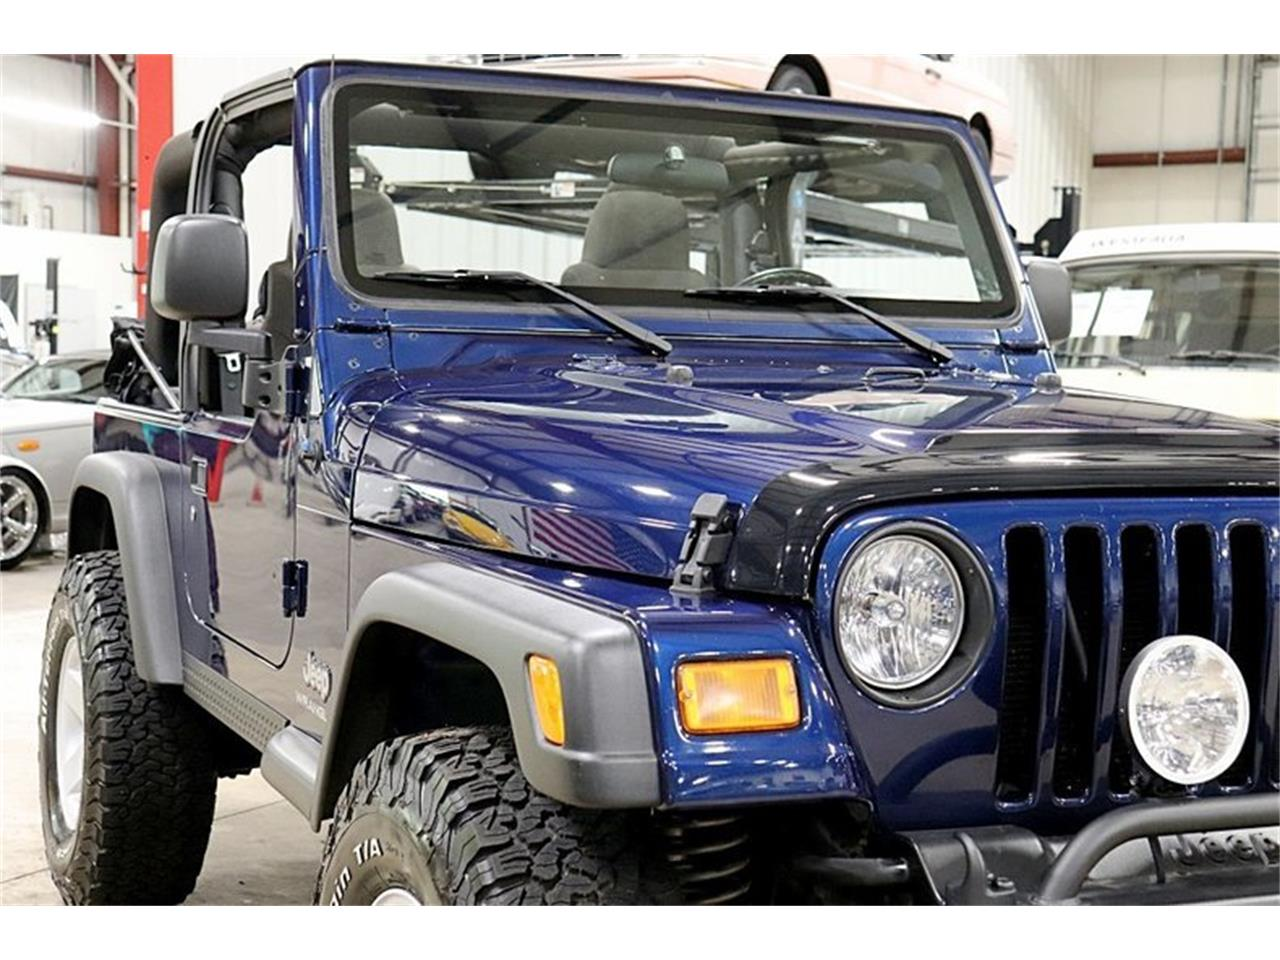 Large Picture of 2005 Jeep Wrangler located in Michigan - $17,900.00 Offered by GR Auto Gallery - QS1I